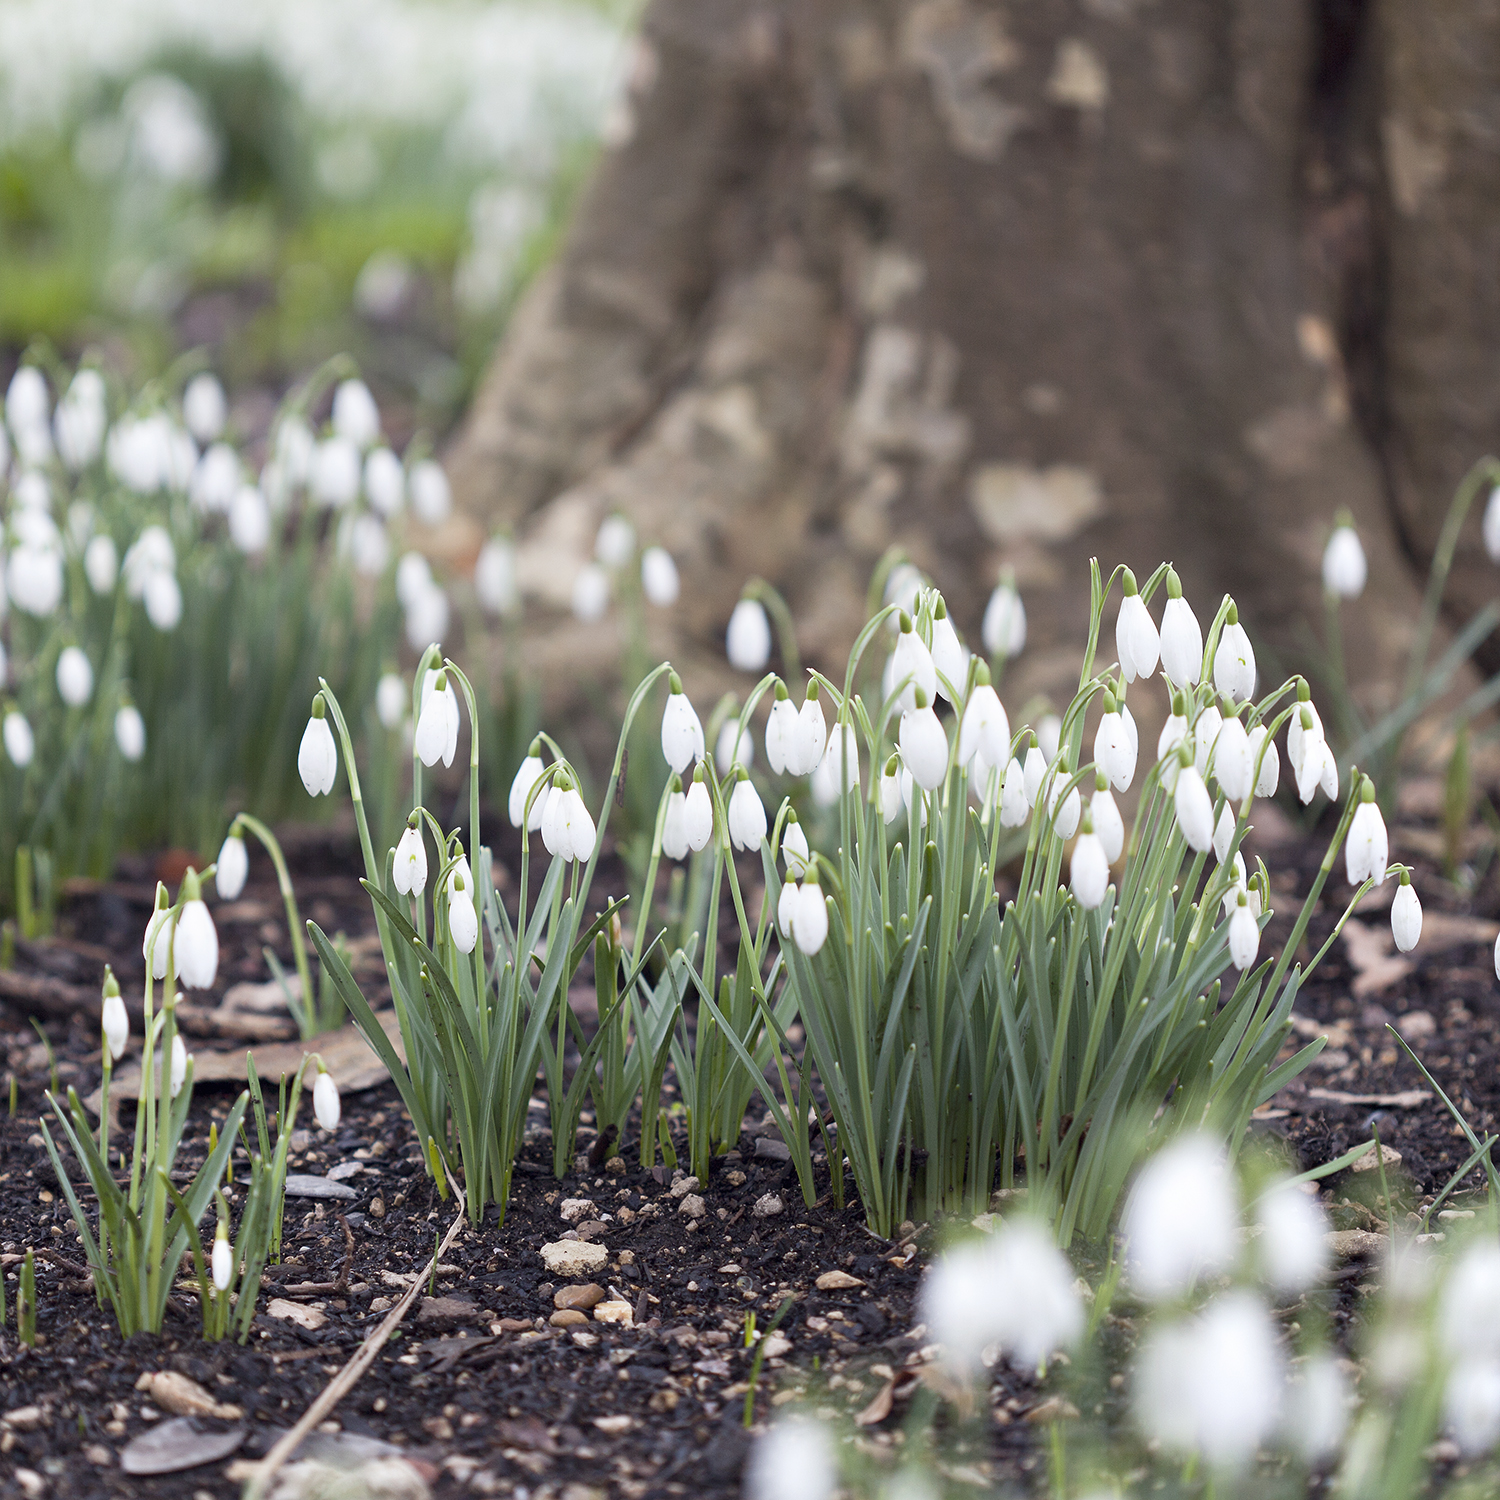 Setting my Intention for the New Year with a Word | Photo of snowdrops | natashadenness.co.uk